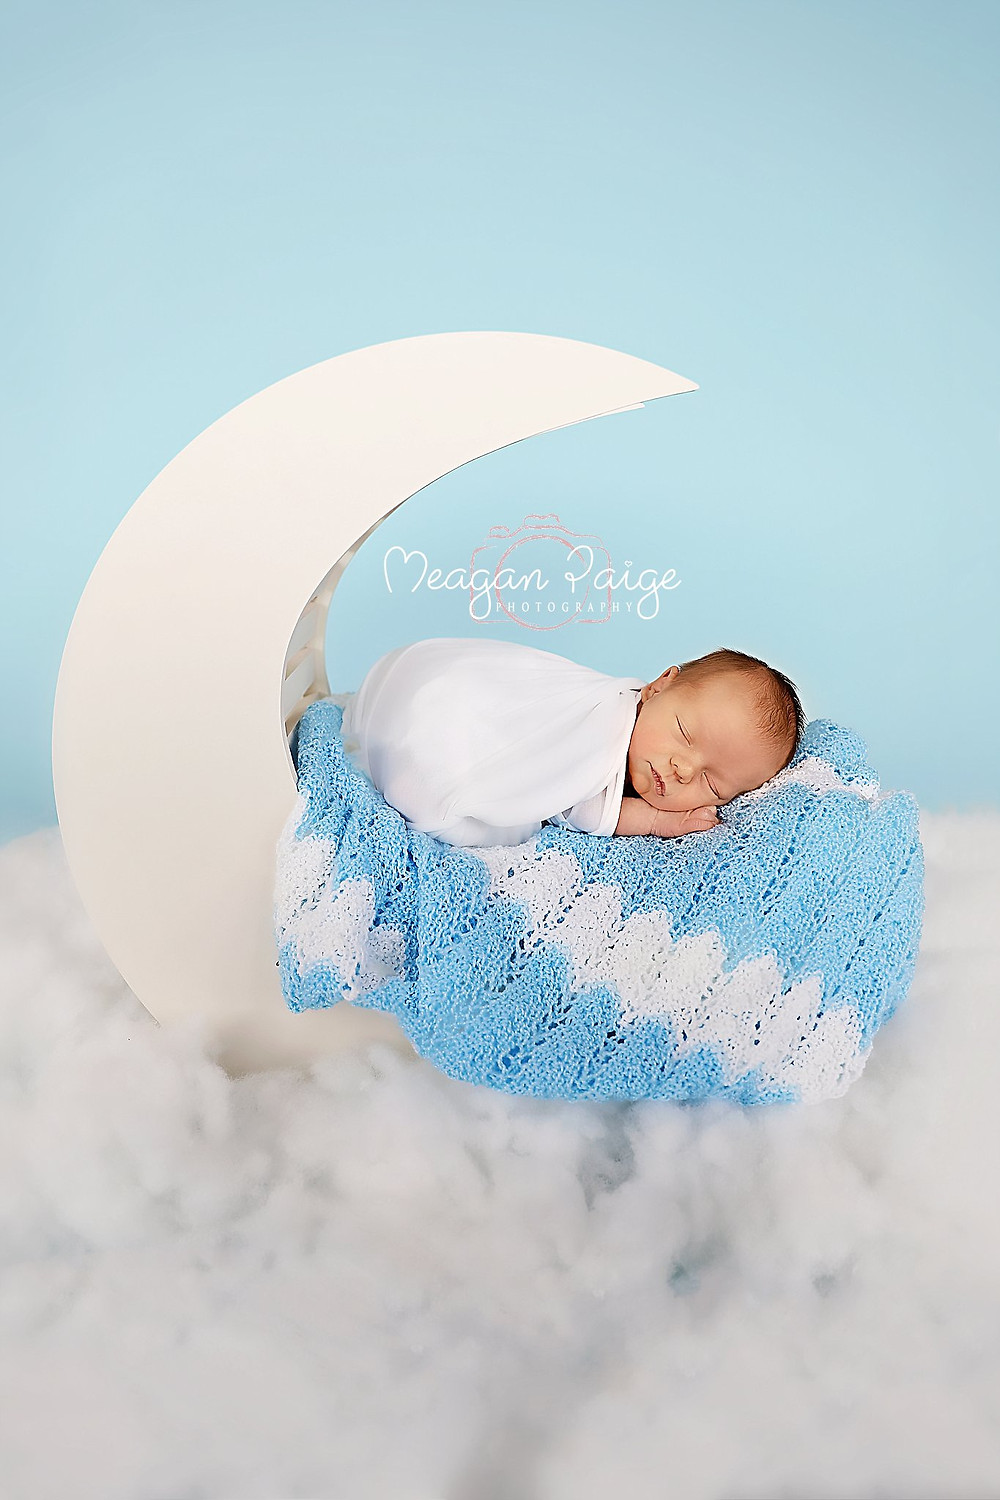 Baby Boy James in Newborn Moon Prop